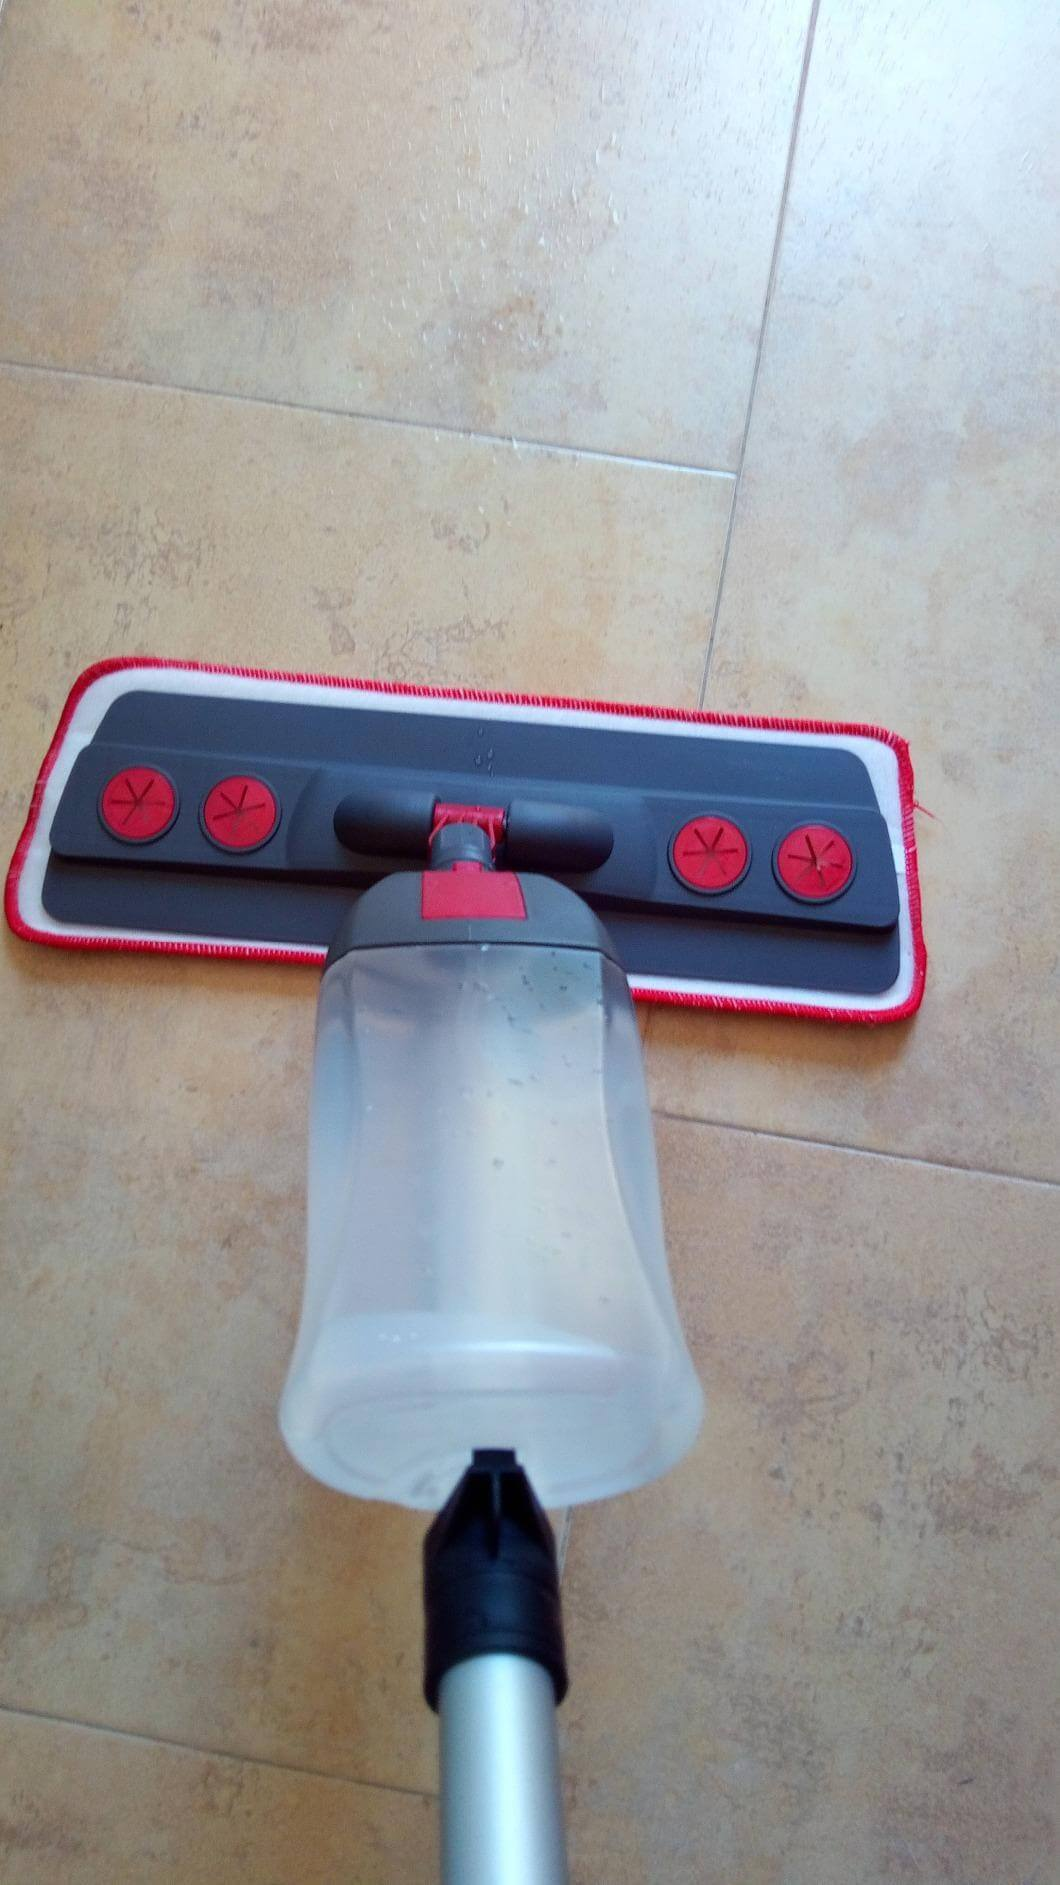 Taking Care Of Ceramic Tile Floors Wizmops Cleaning Supplies